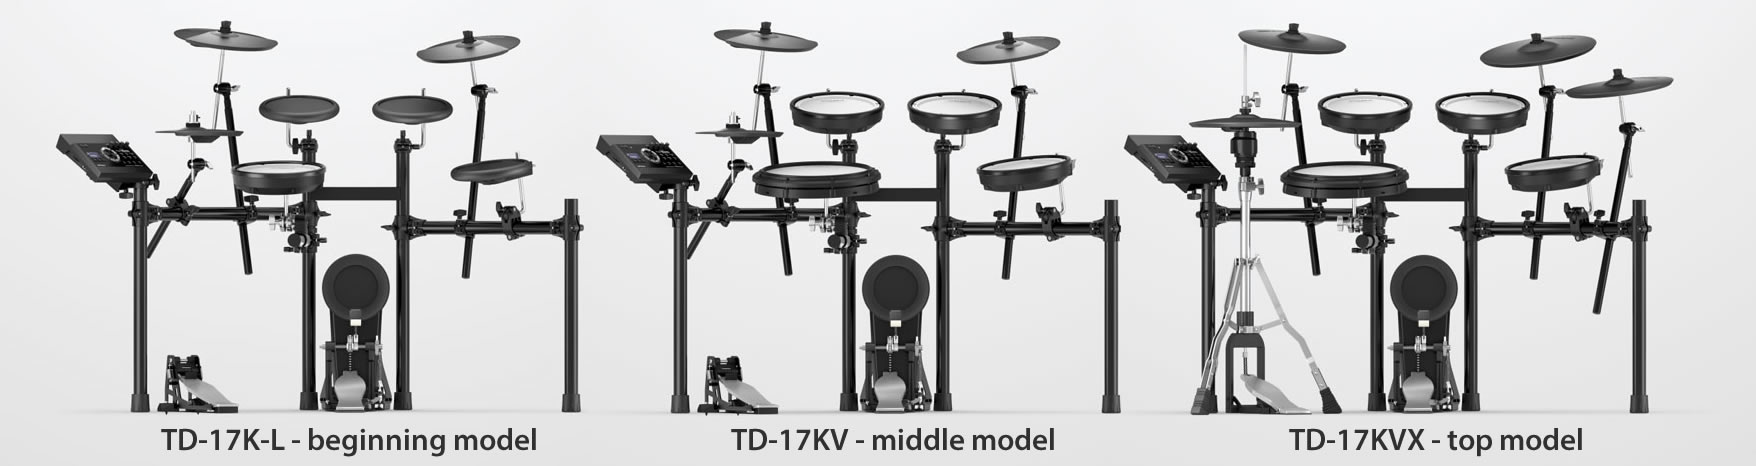 Roland TD-17 - the new V-Drums kits explained